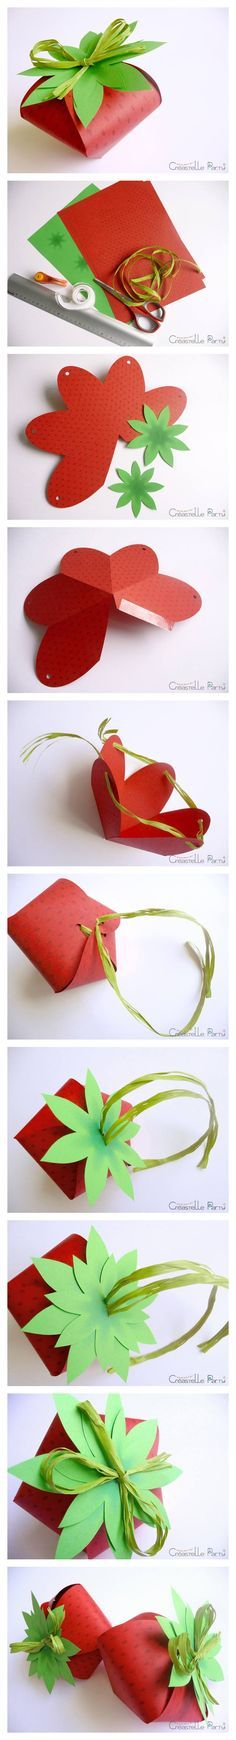 DIY strawberry box (Imprimer le modèle pdf gratuit téléchargeable ici.) translates to : Print download free pdf pattern here .